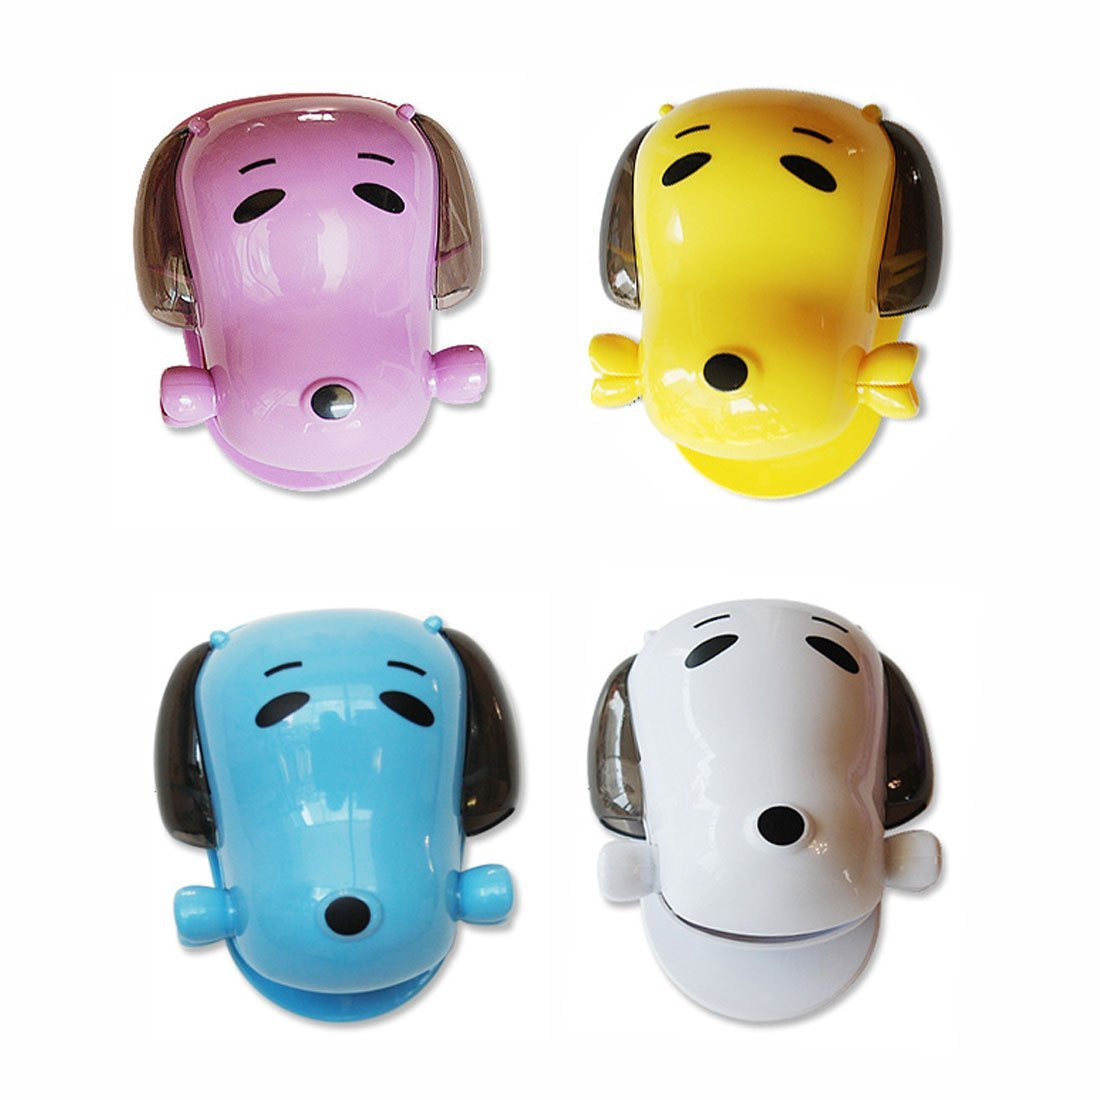 Toothbrush Holder Mini Dog Toothpaste Holder Toothpaste Dispenser (4 colors random)